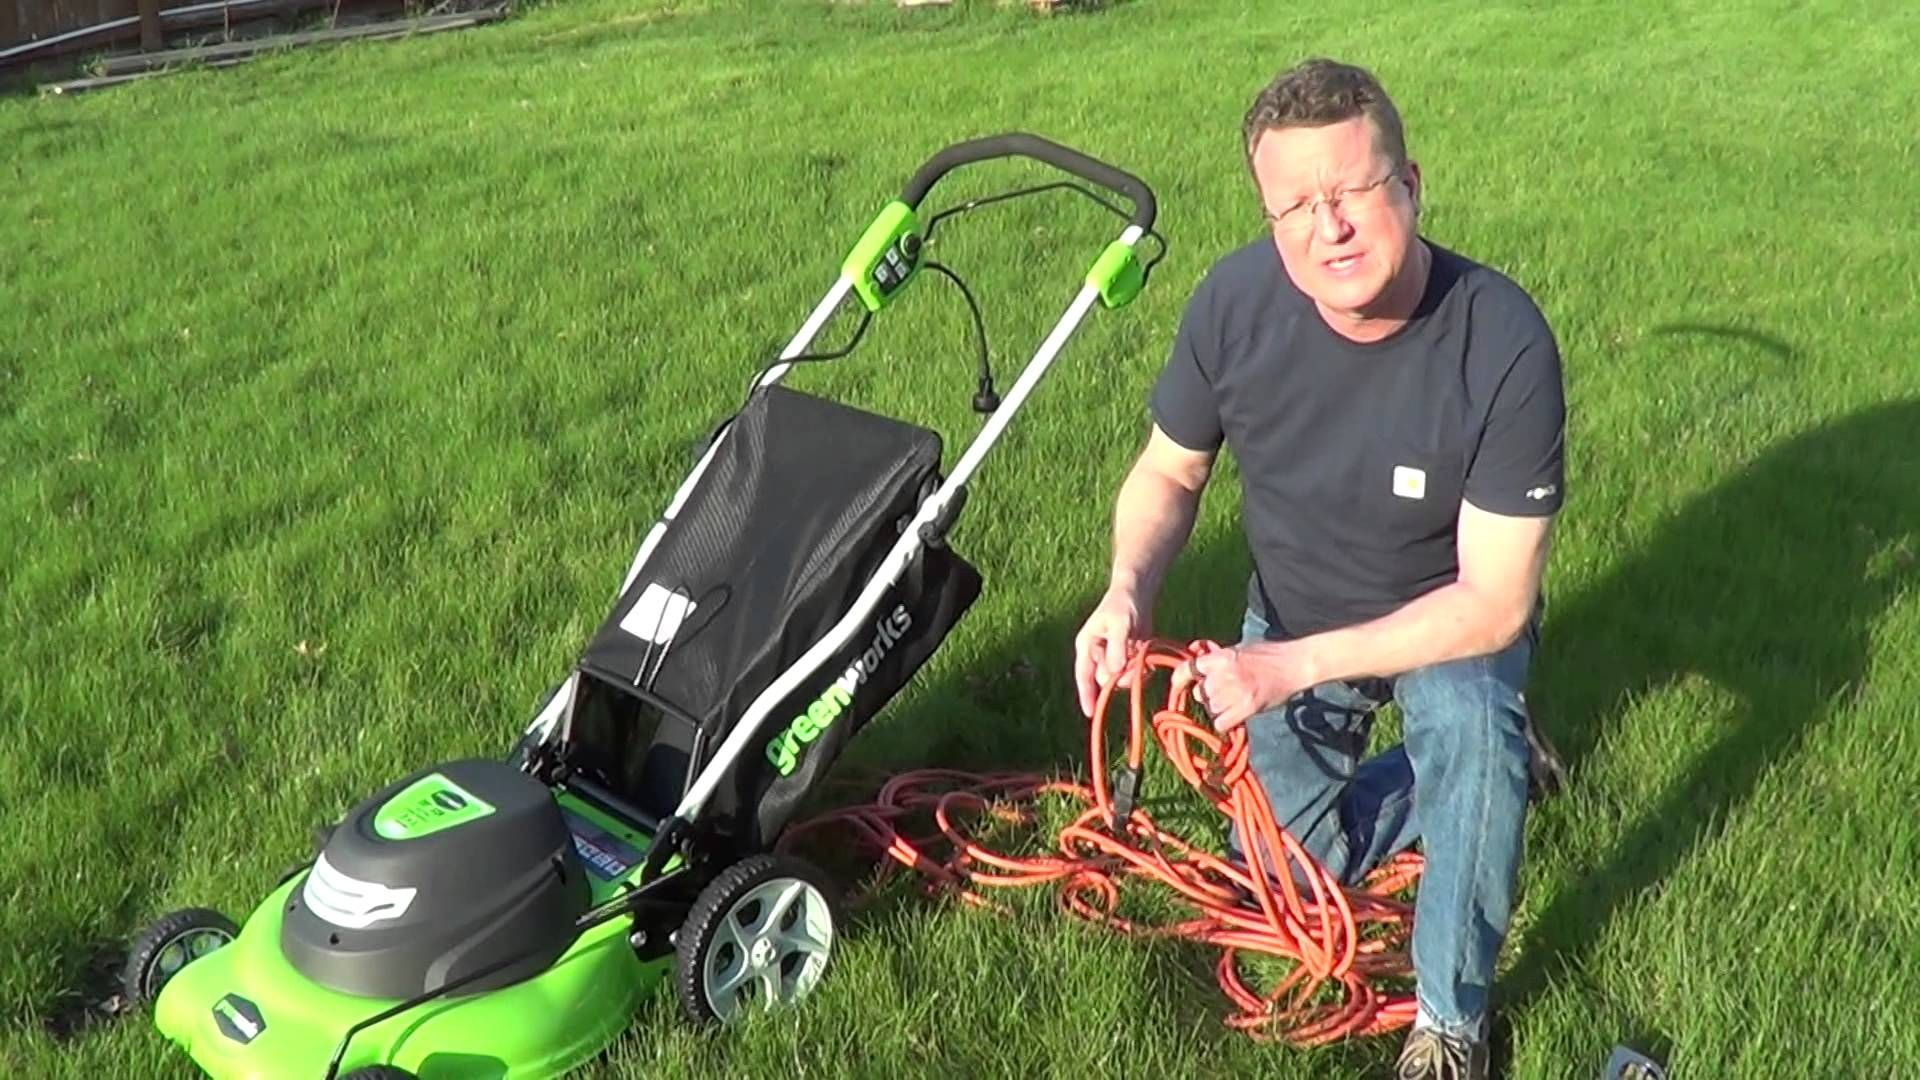 Ride On Mower >> Best 25+ Electric mower ideas on Pinterest | Lawn tractors, Lawn mower tractor and Lawn mower ...